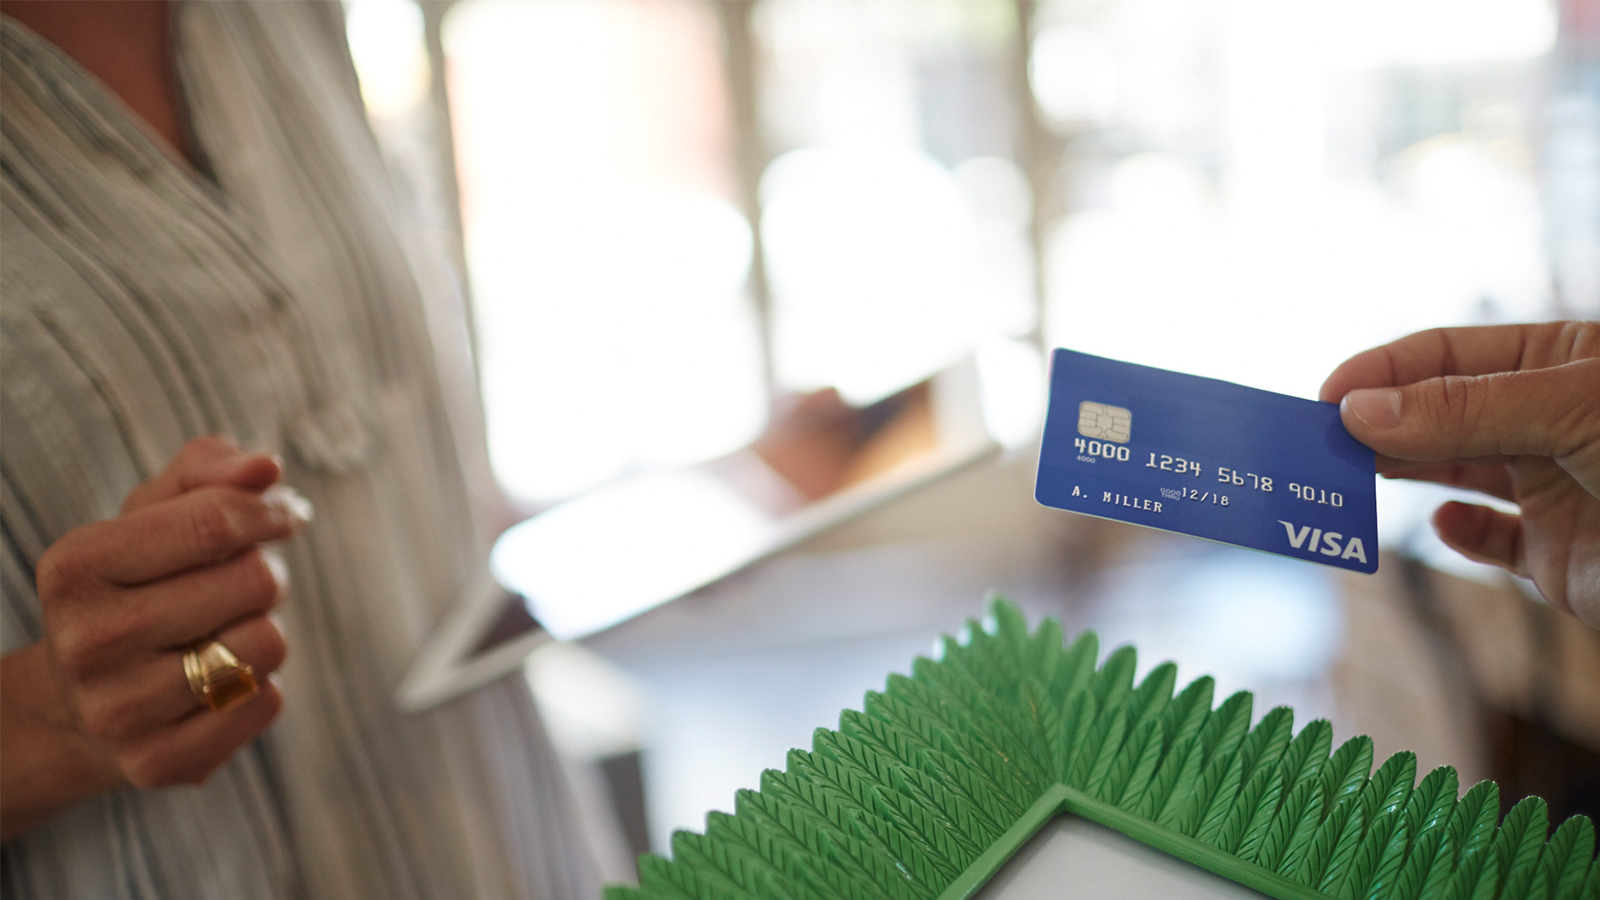 Person presenting Visa chip card as payment.